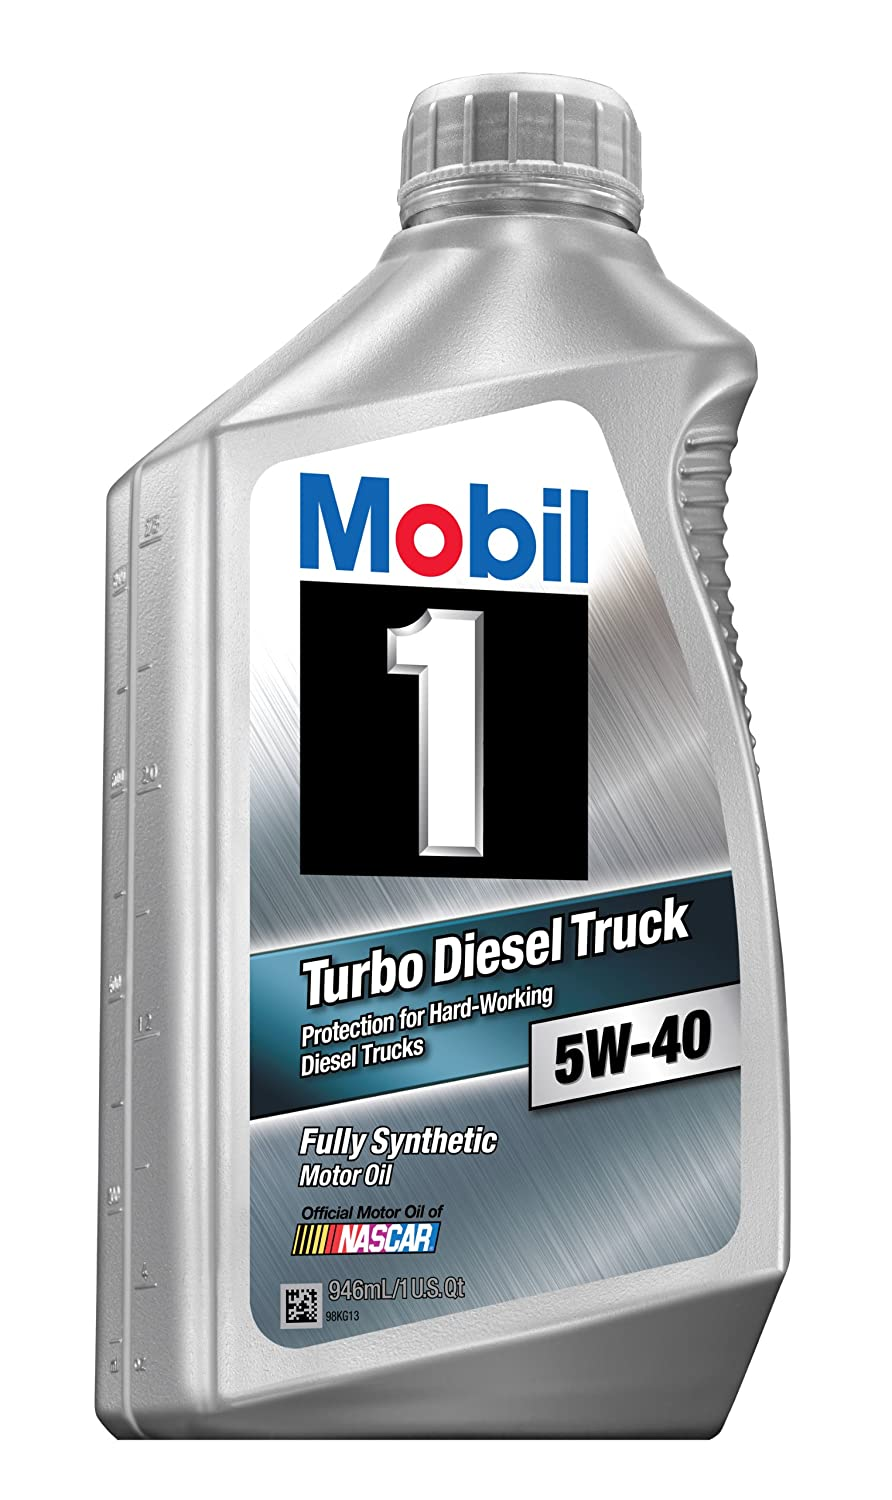 Mobil 1 98hm64 5w 40 turbo diesel truck synthetic motor for 5 w 40 motor oil